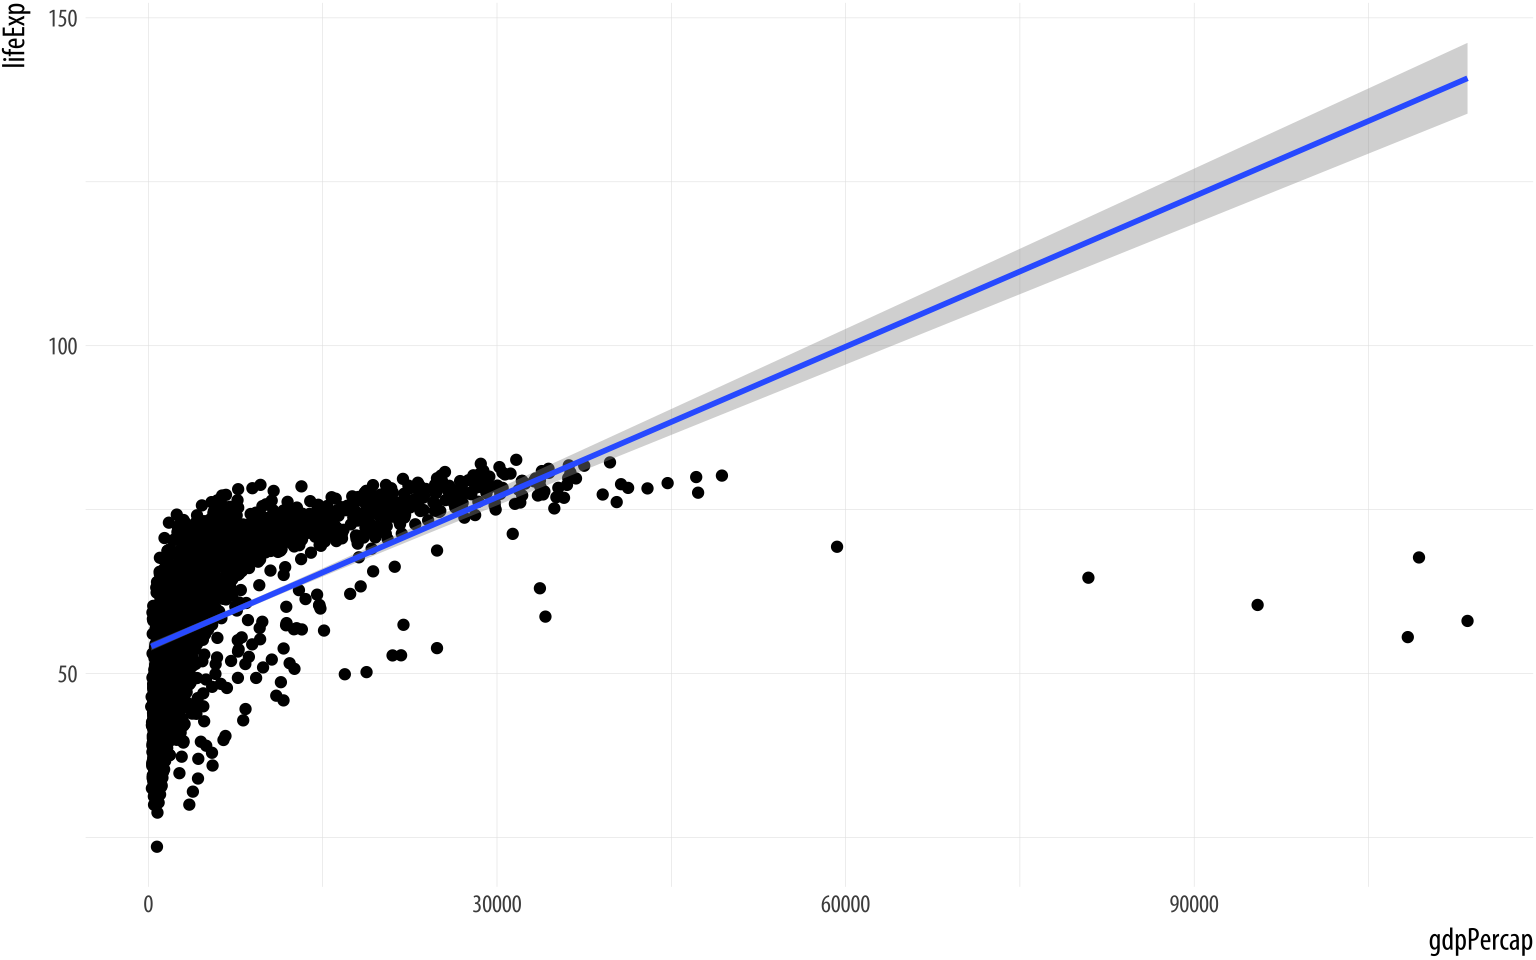 Life Expectancy vs GDP, points and an ill-advised linear fit.